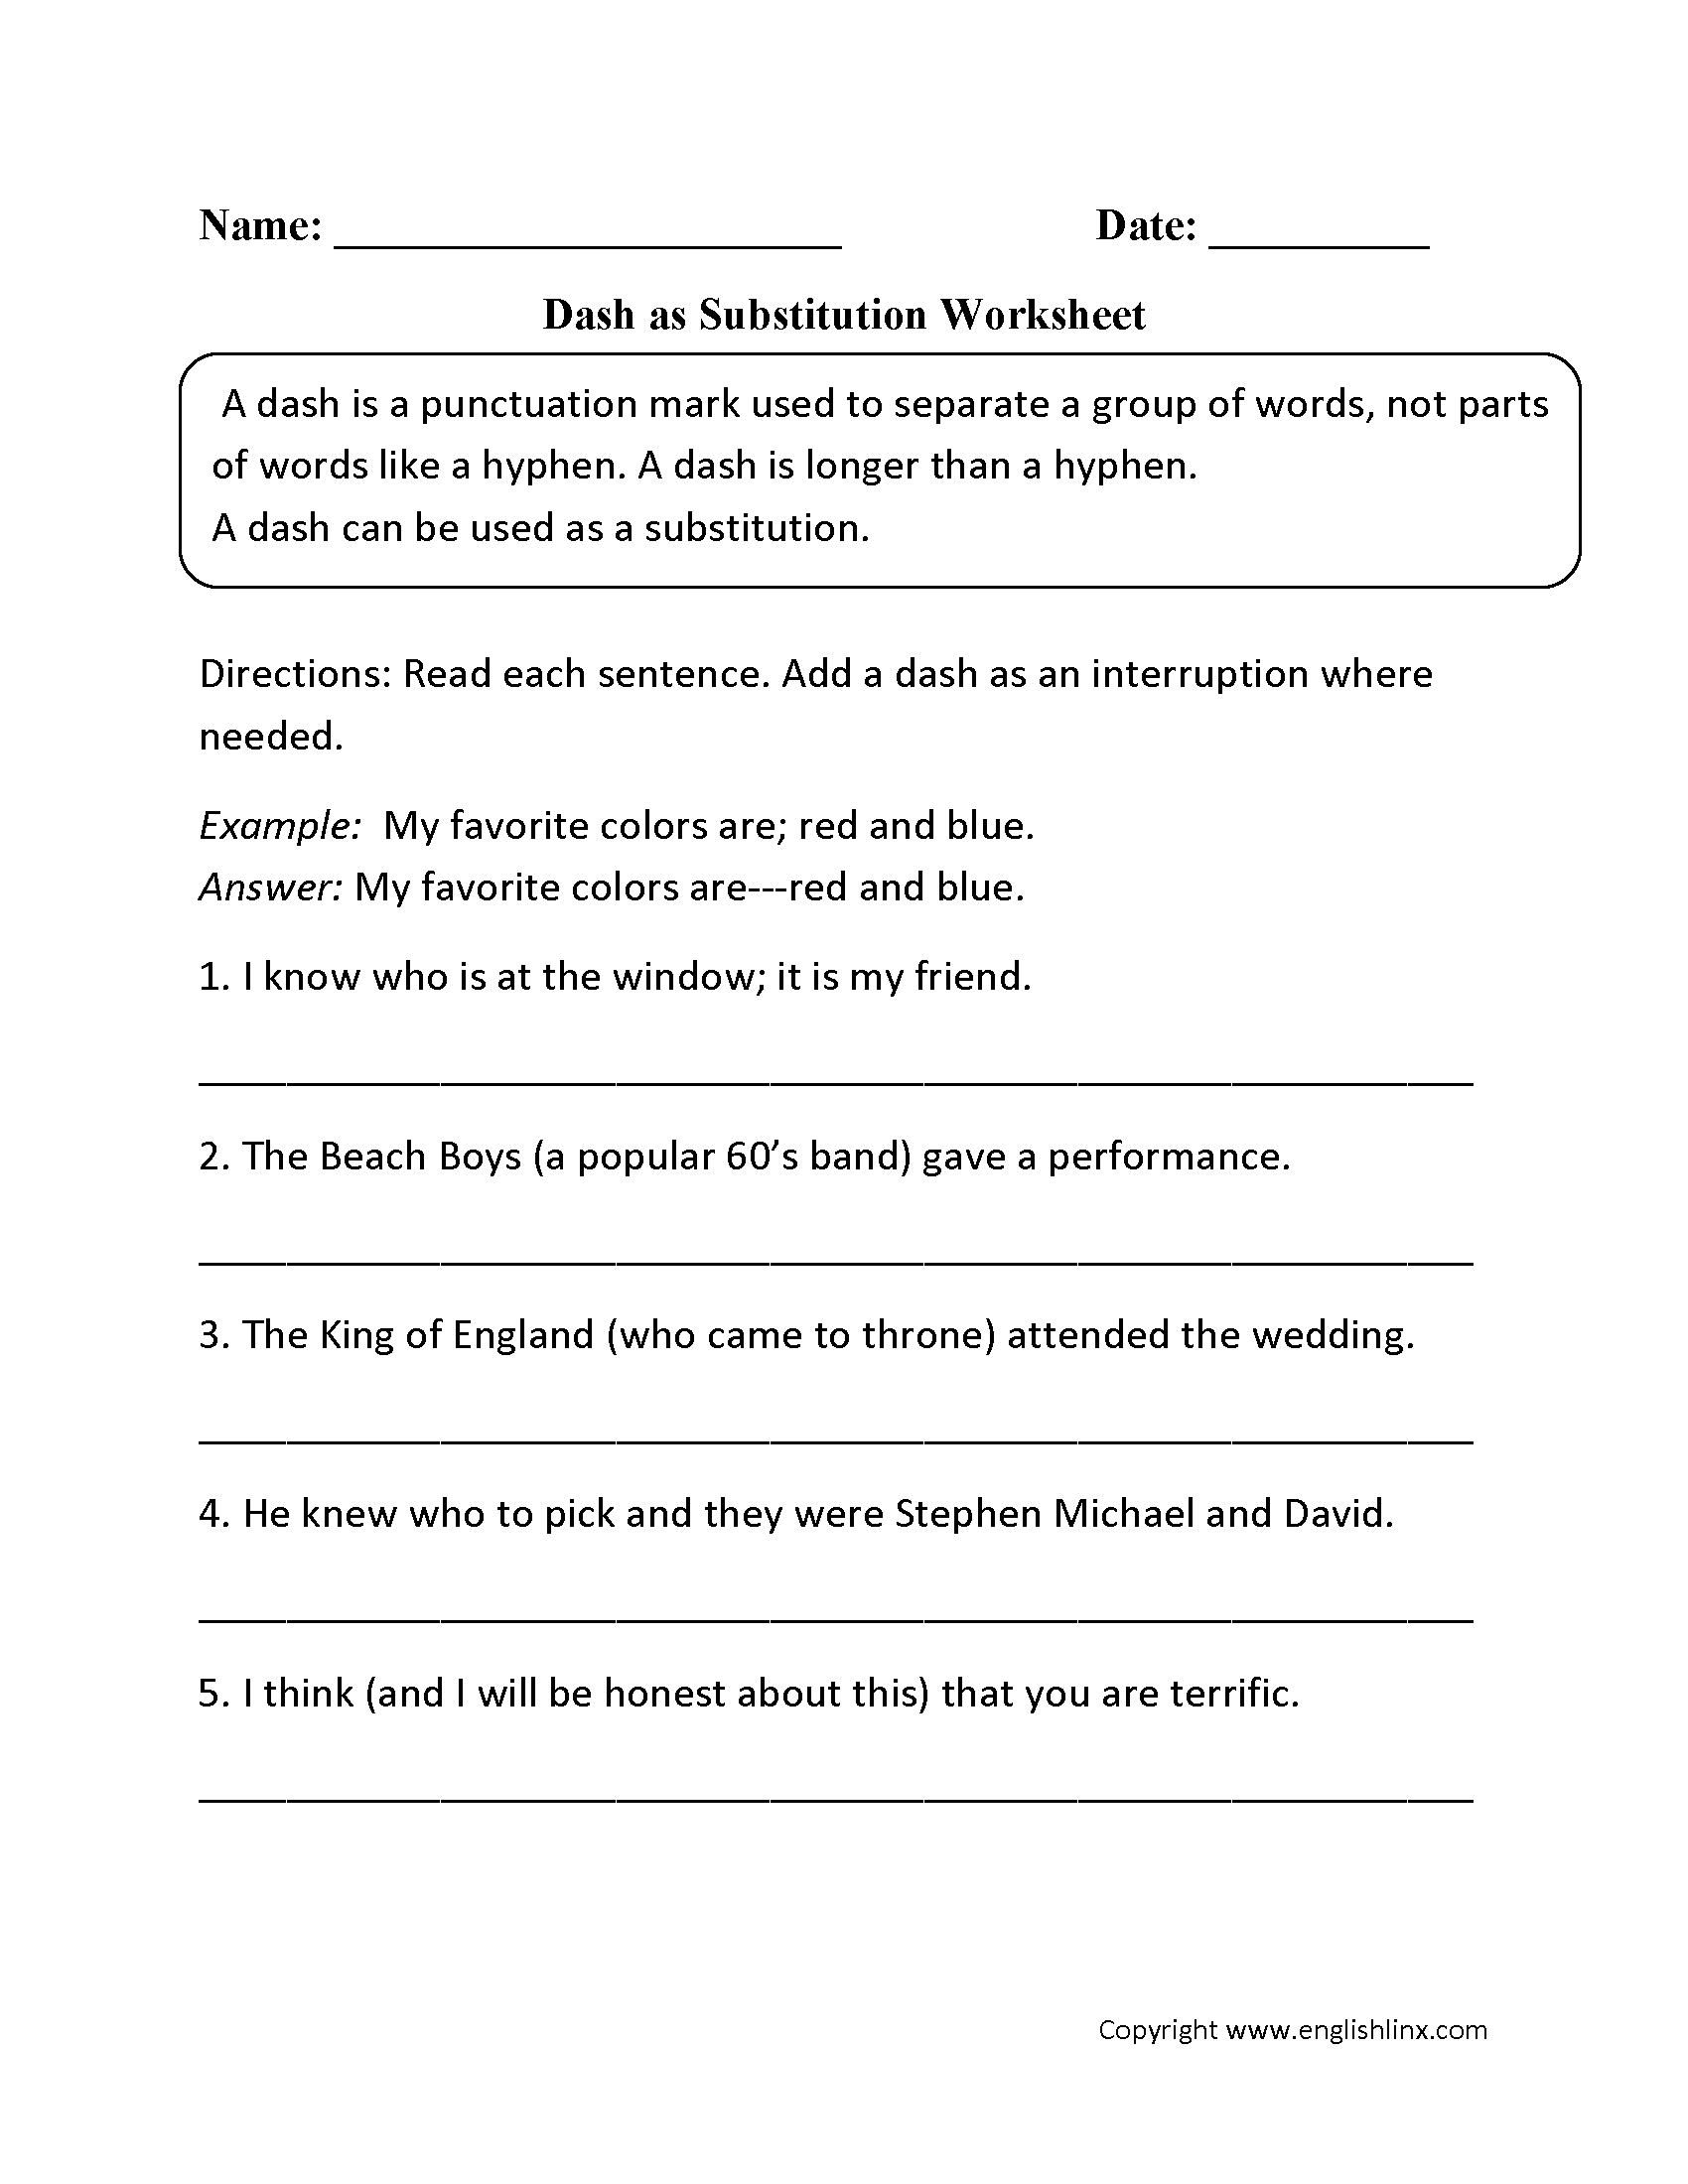 Printables Substitution Worksheet punctuation worksheets dash as substitution worksheet